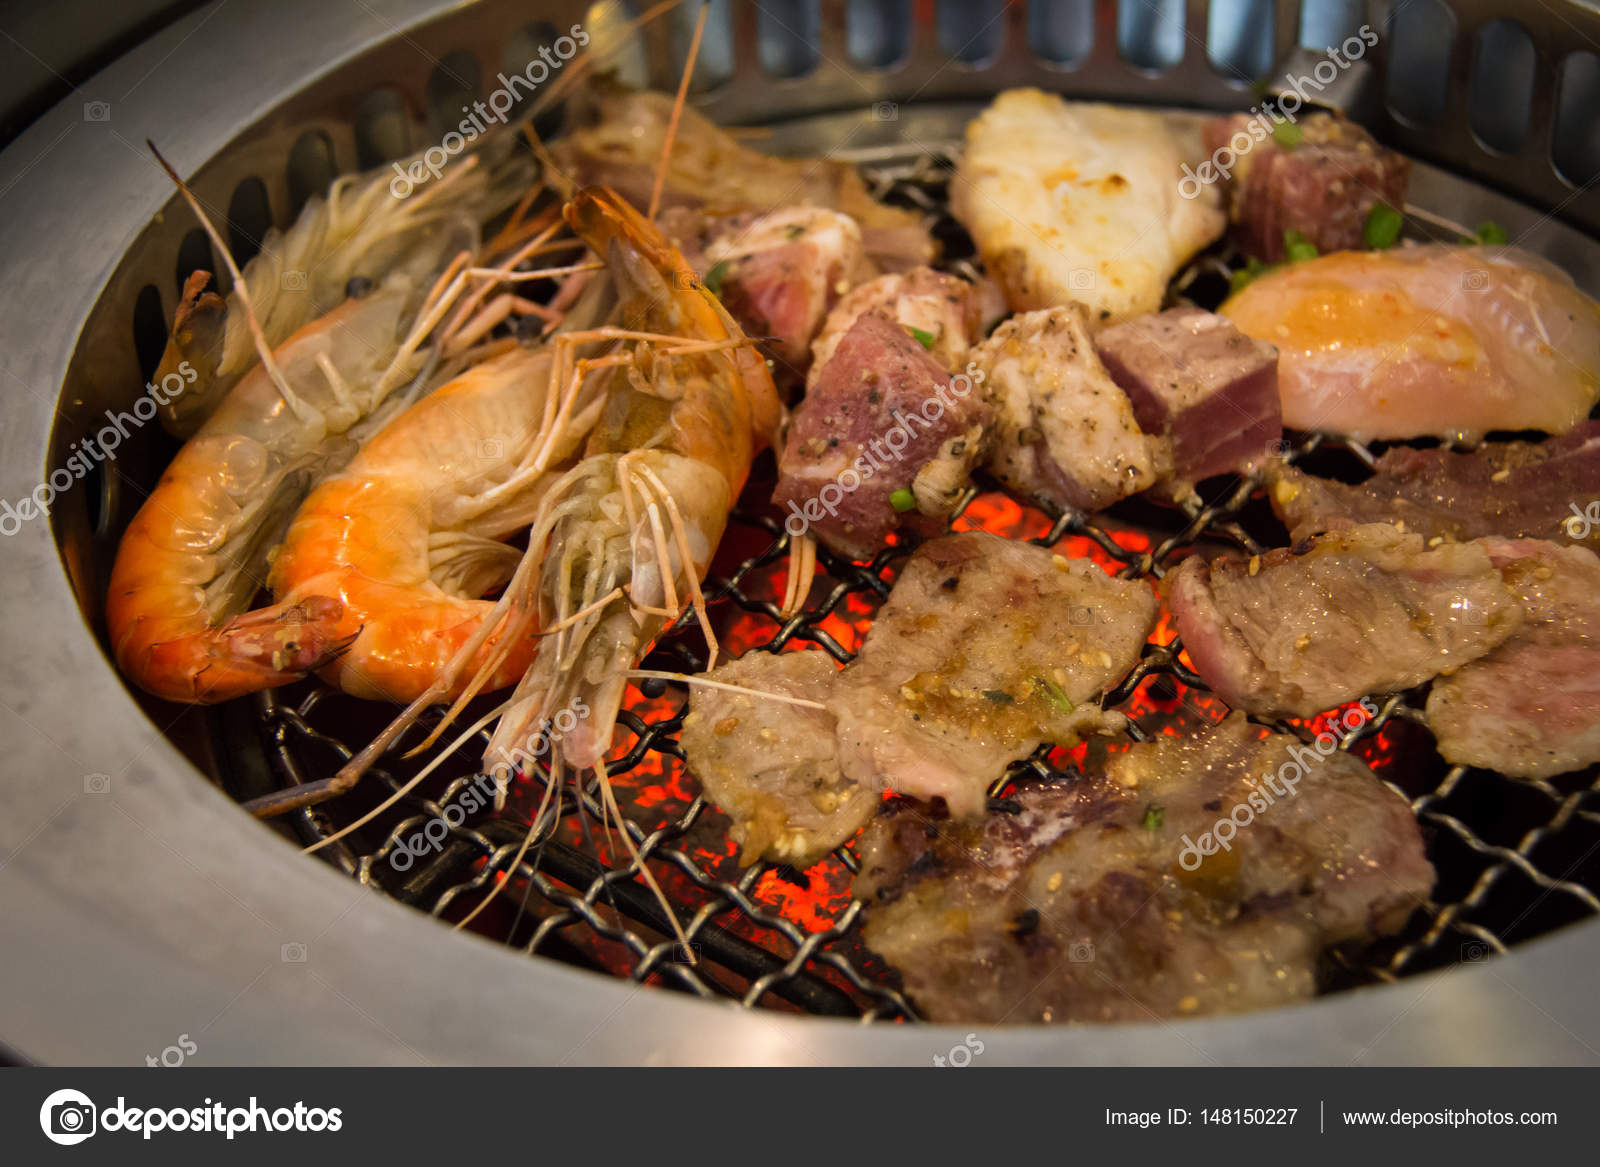 Close Delicious Grilled Seafood Platter Grill Seafood Fresh Beef Steak Stock Photo C Rusticfoto 148150227